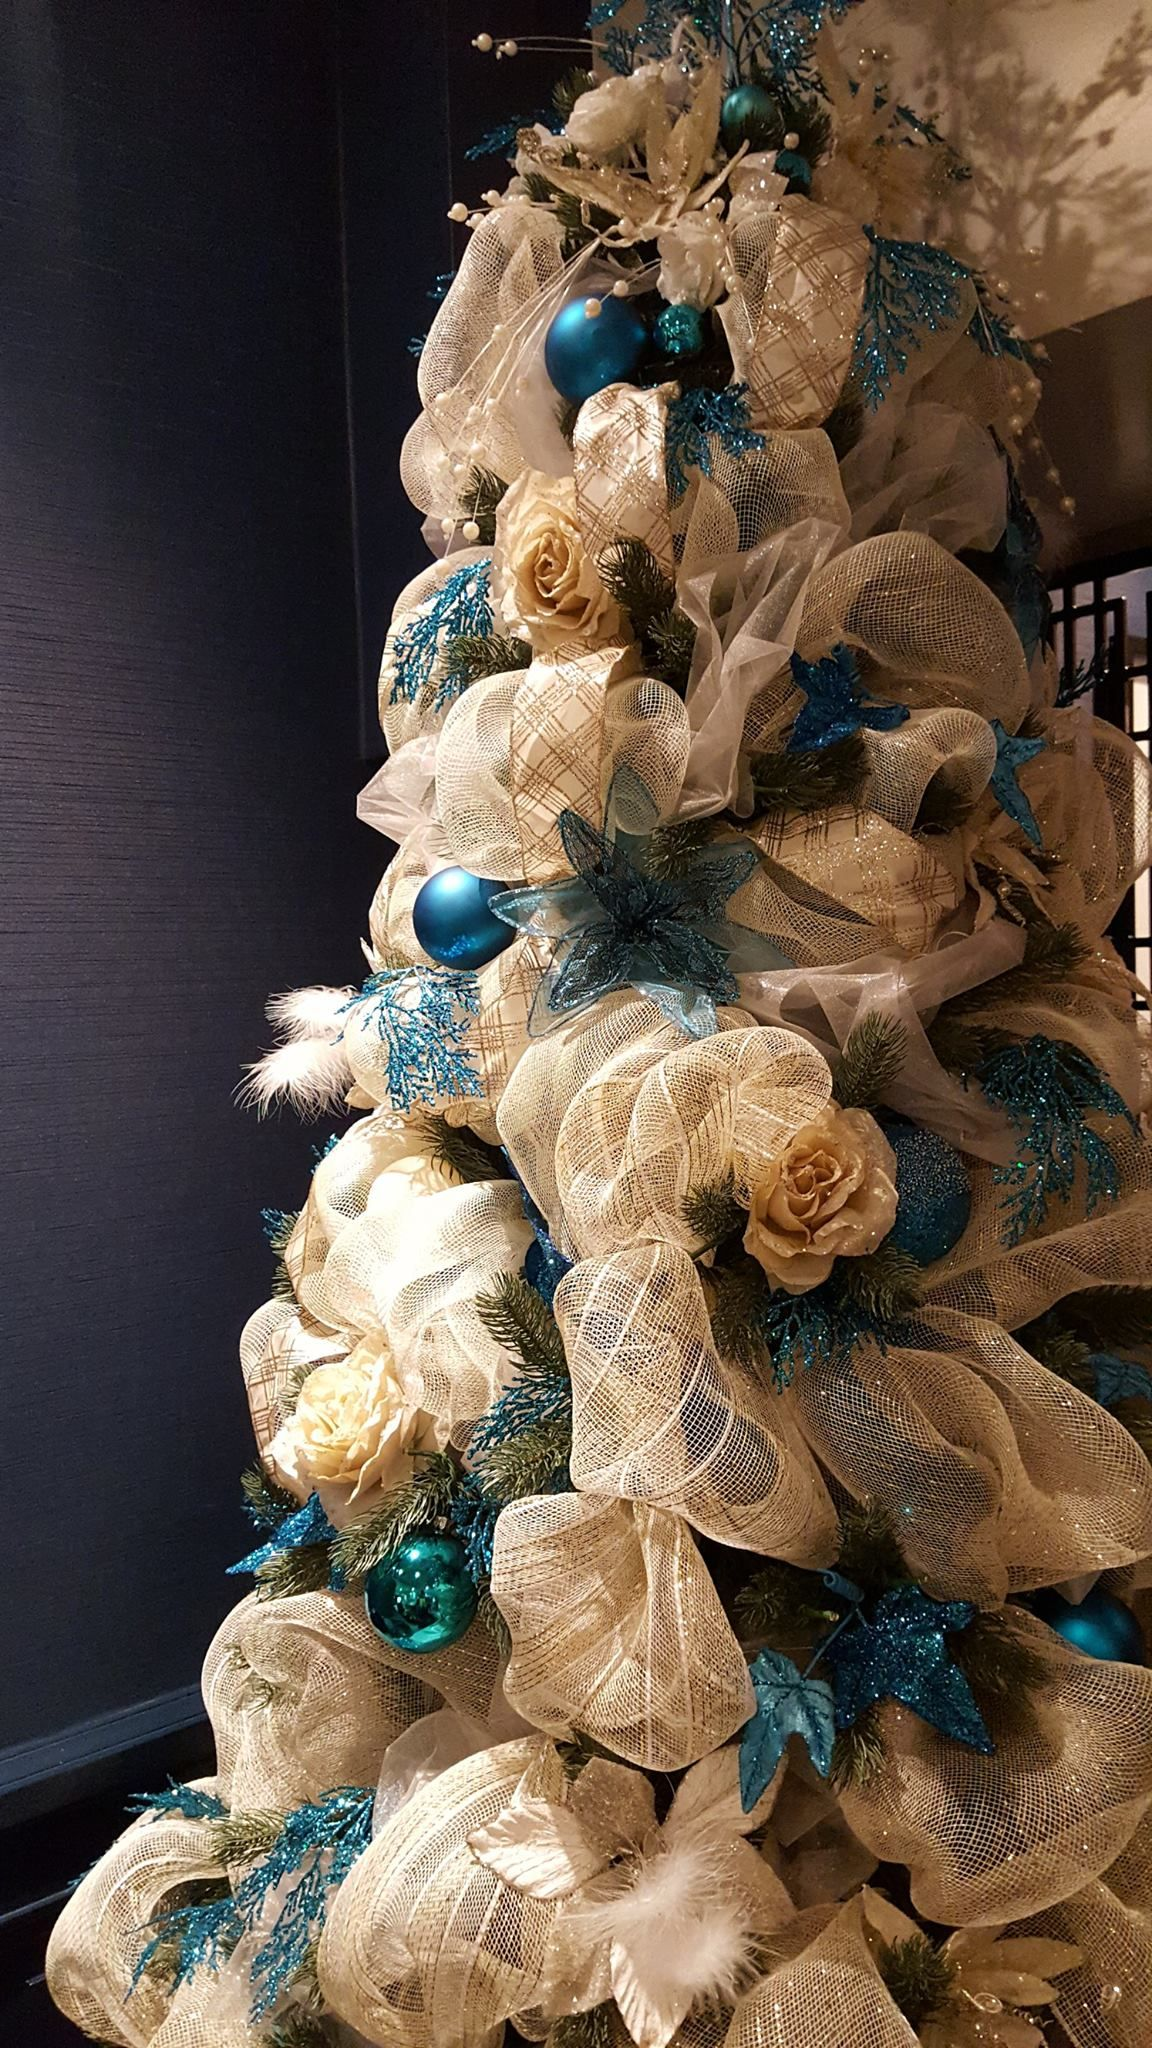 White And Blue Christmas Tree Decorations Book Christmas Productions Acro Commercial Christmas Decorations Blue Christmas Tree Decorations Blue Christmas Tree